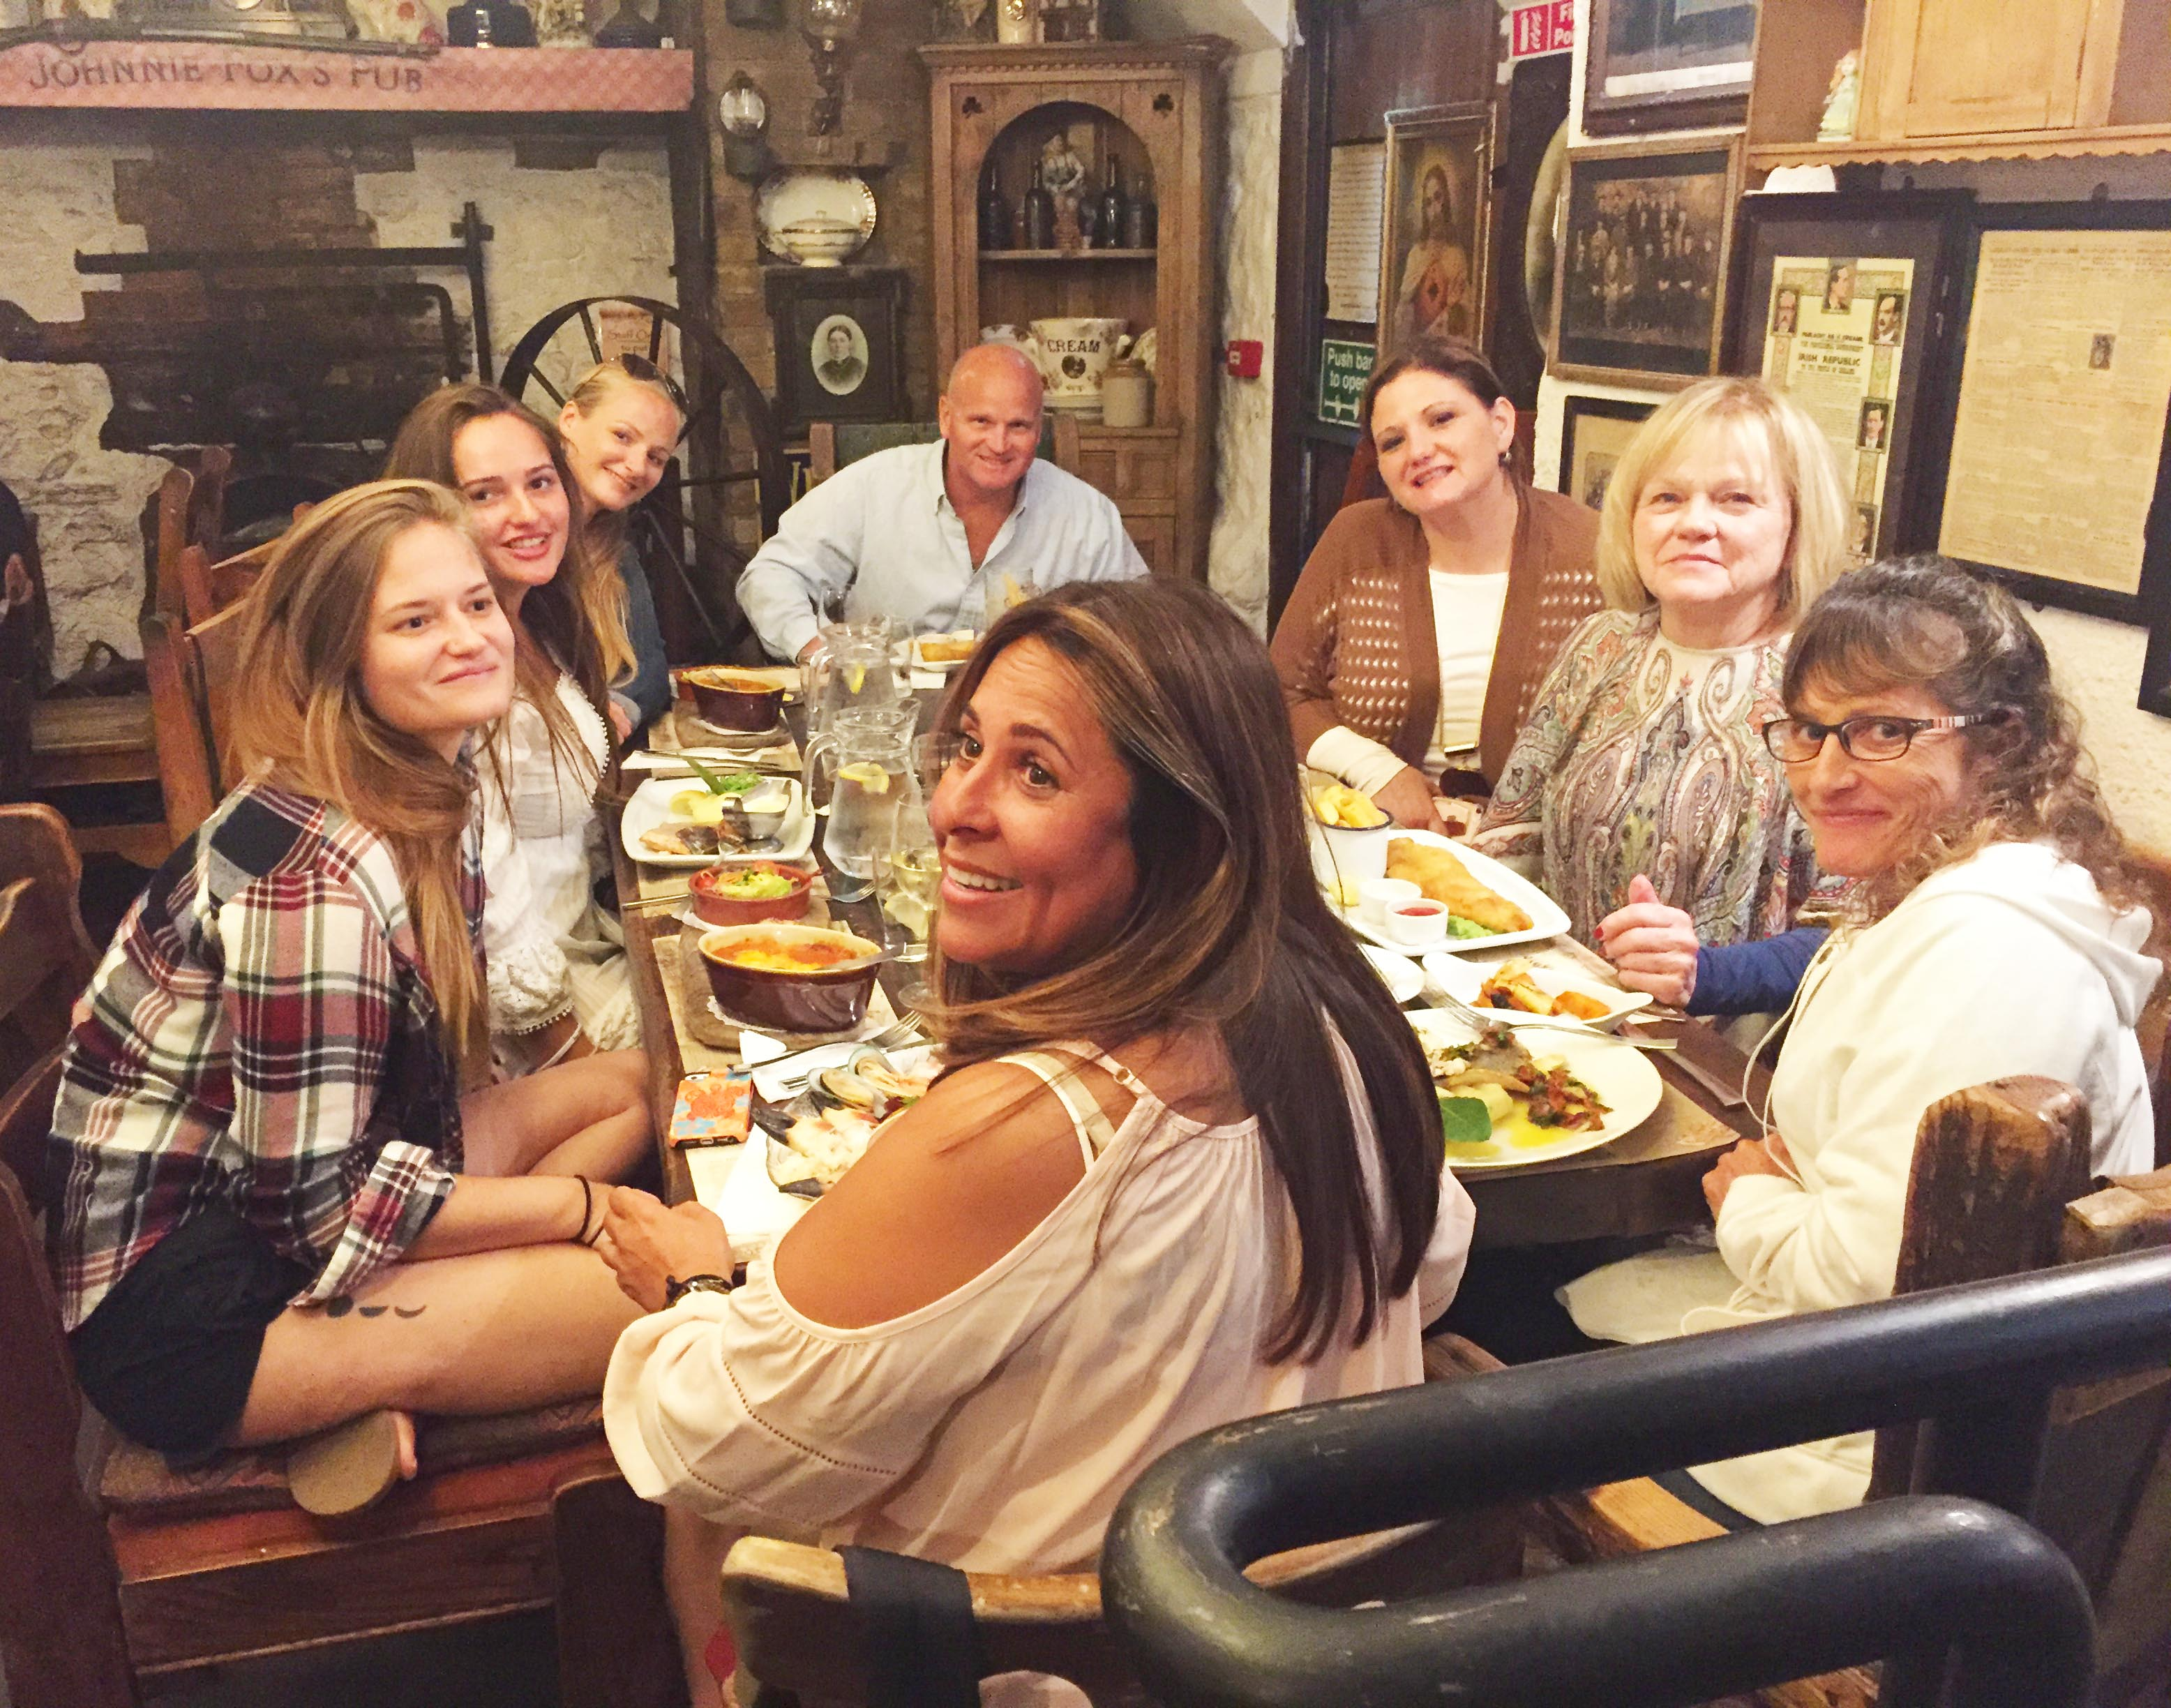 With my uncle, aunt, grandmother, mom, aunt, sister & cousin at Johnnie Fox's